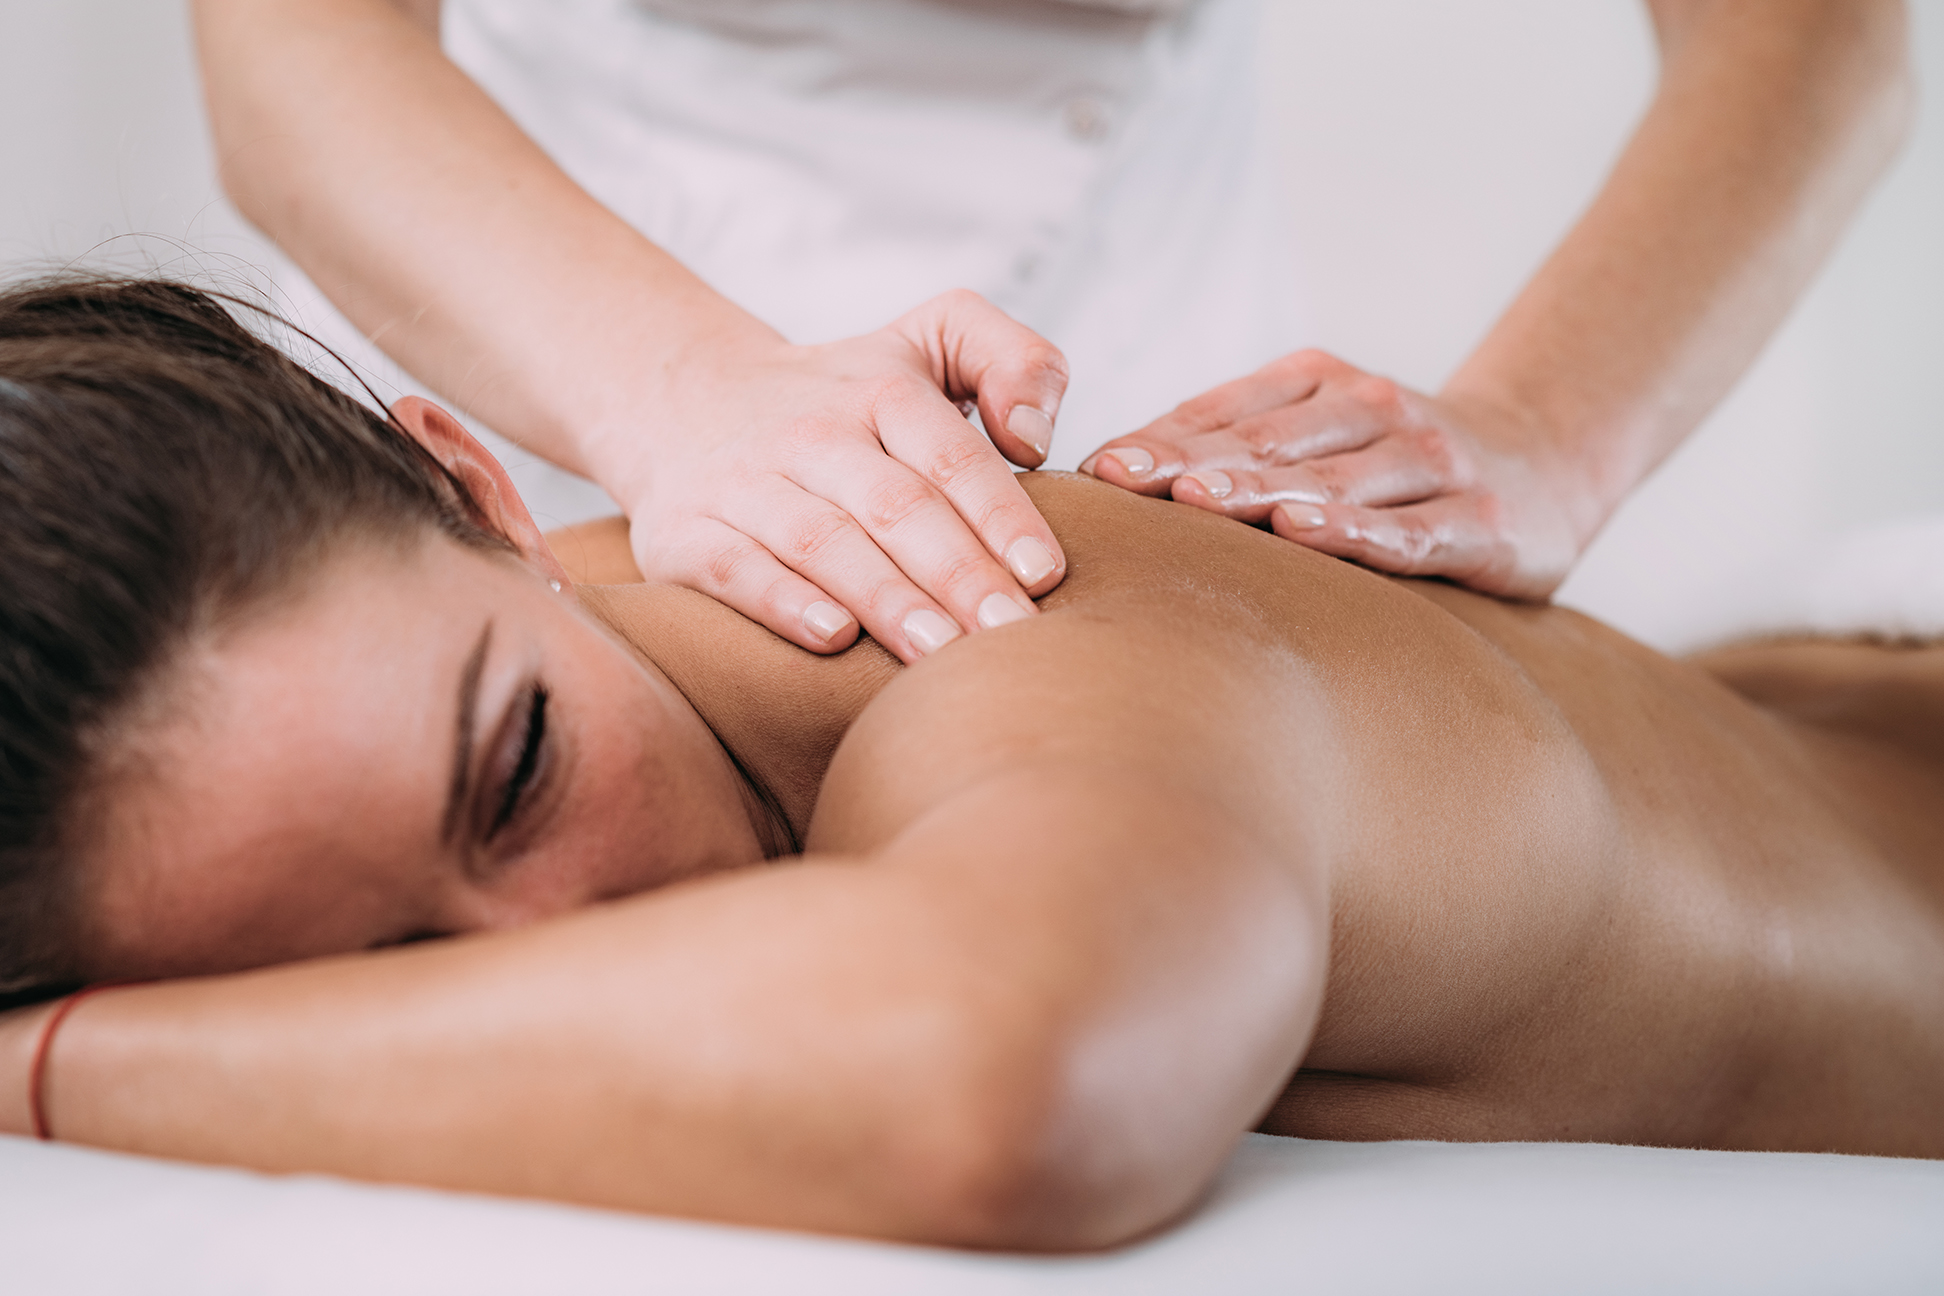 RPM Bodywork specializes in treating sports injury and chronic pain.